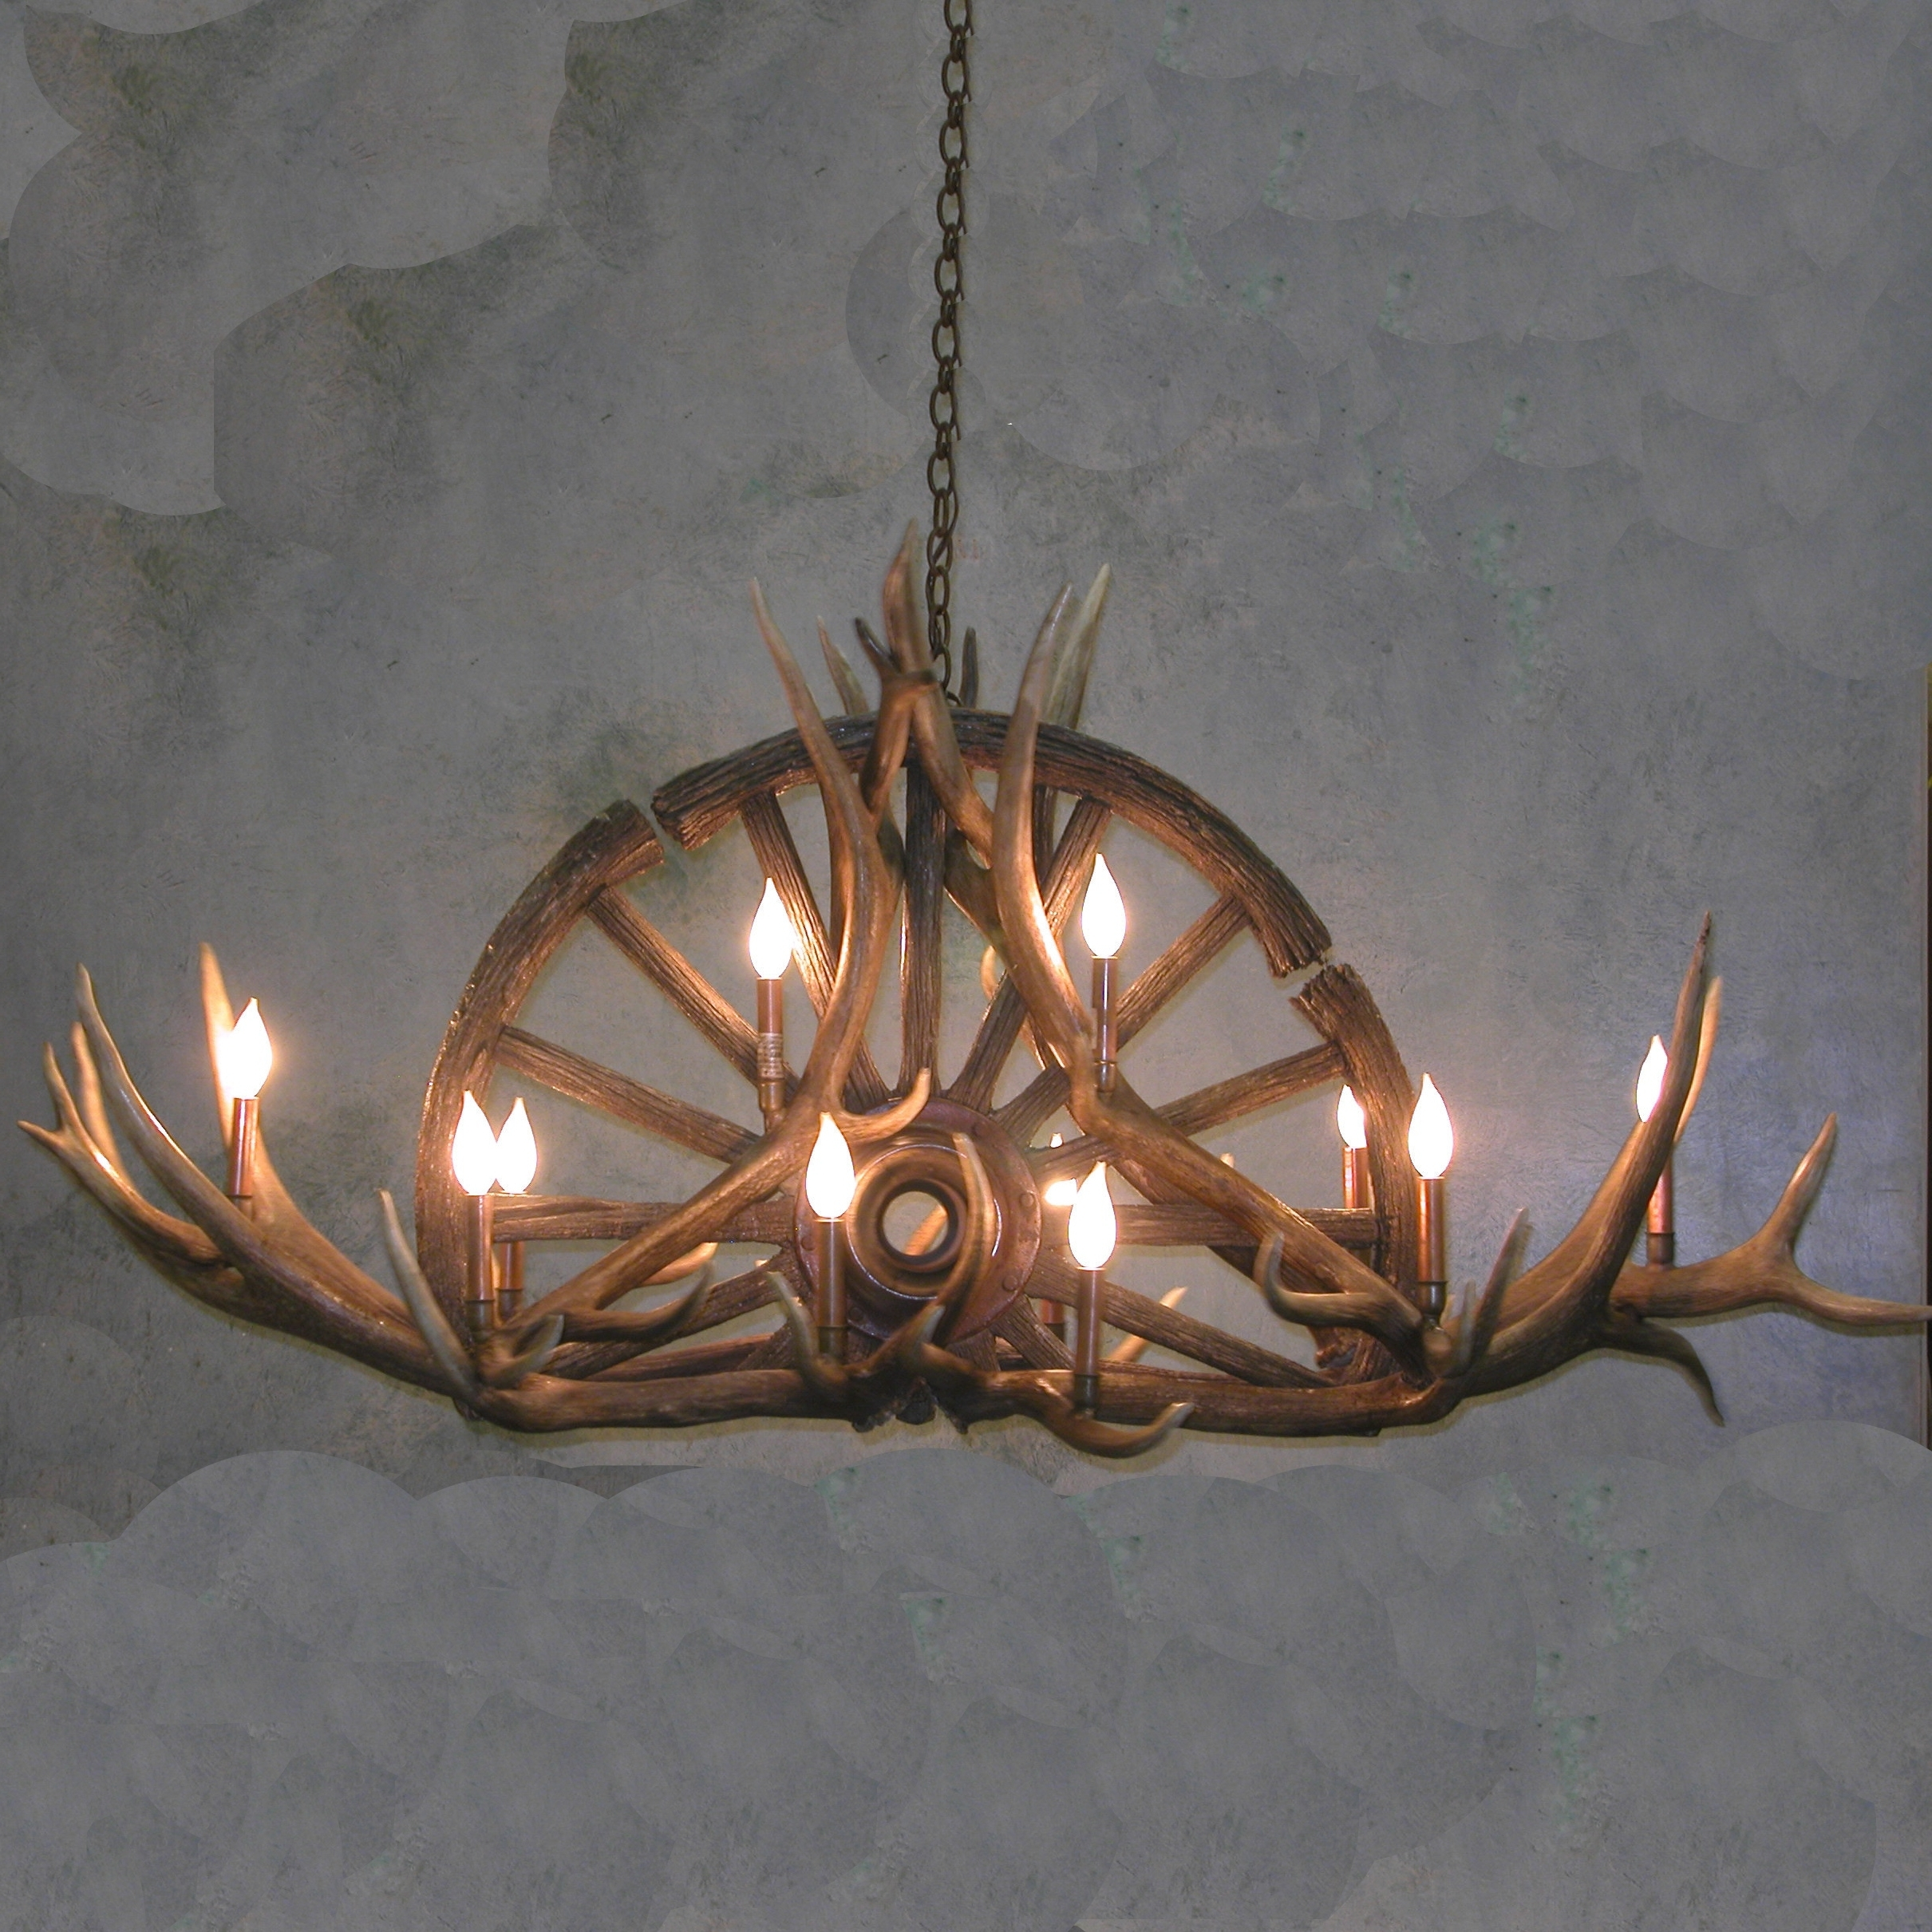 Wagon Wheel Antler Chandelier Throughout Trendy Antler Chandeliers (View 17 of 20)